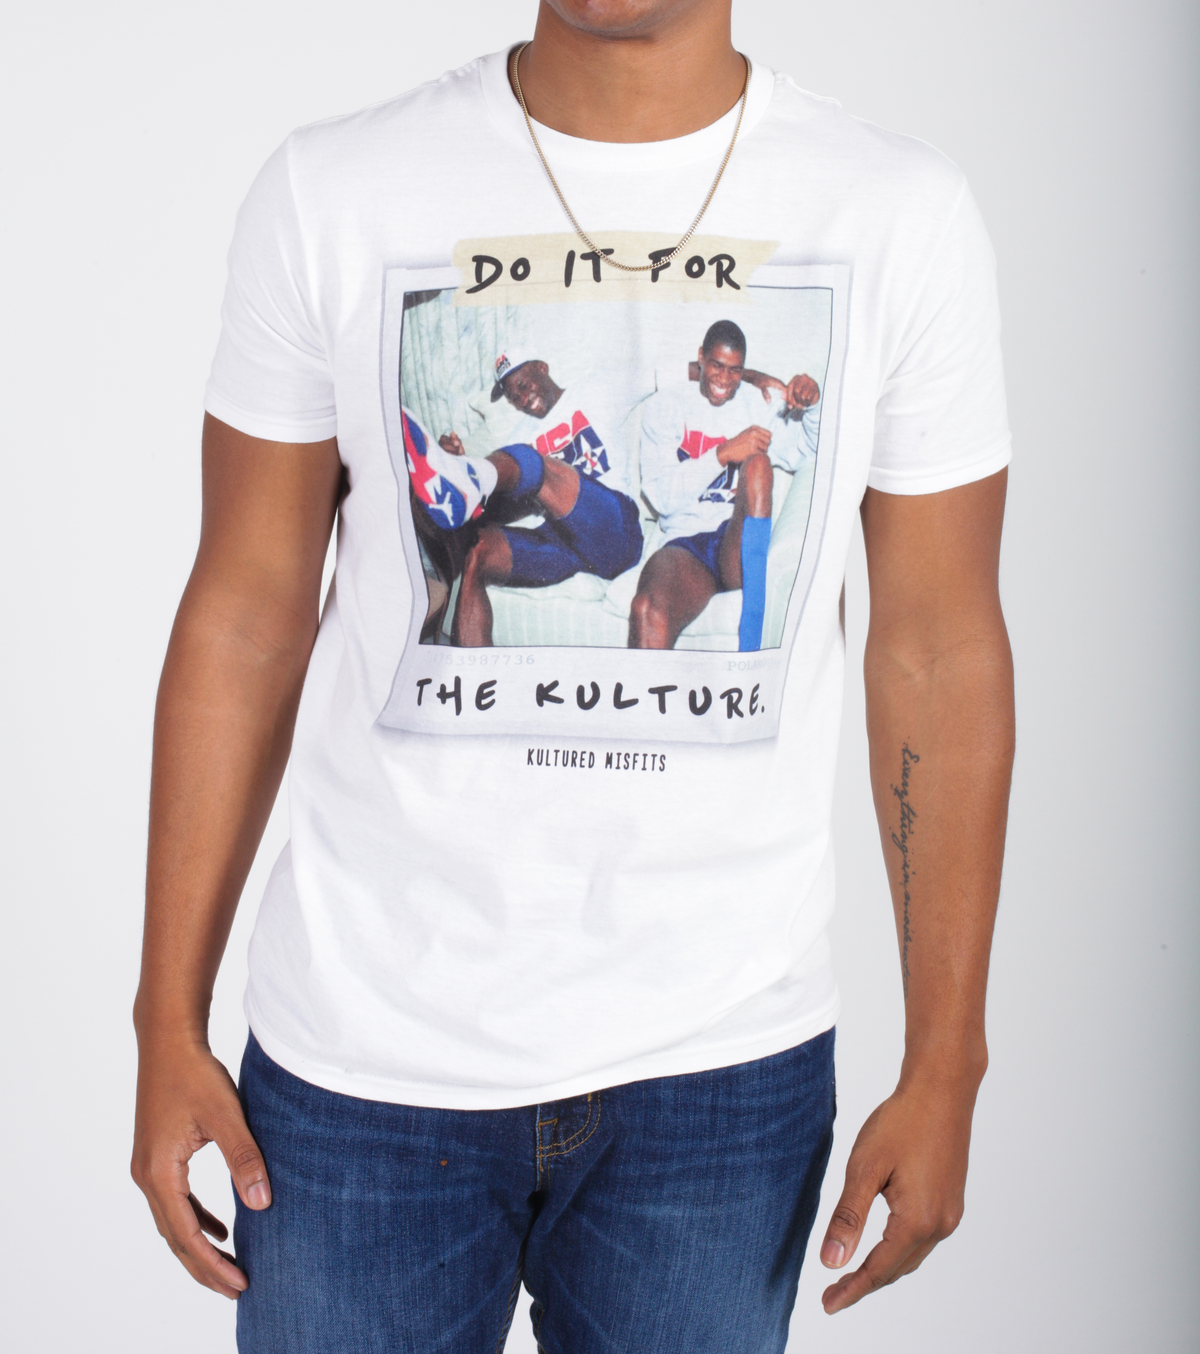 Do It For The Kulture : MJ x Magic (Polaroid Tee)